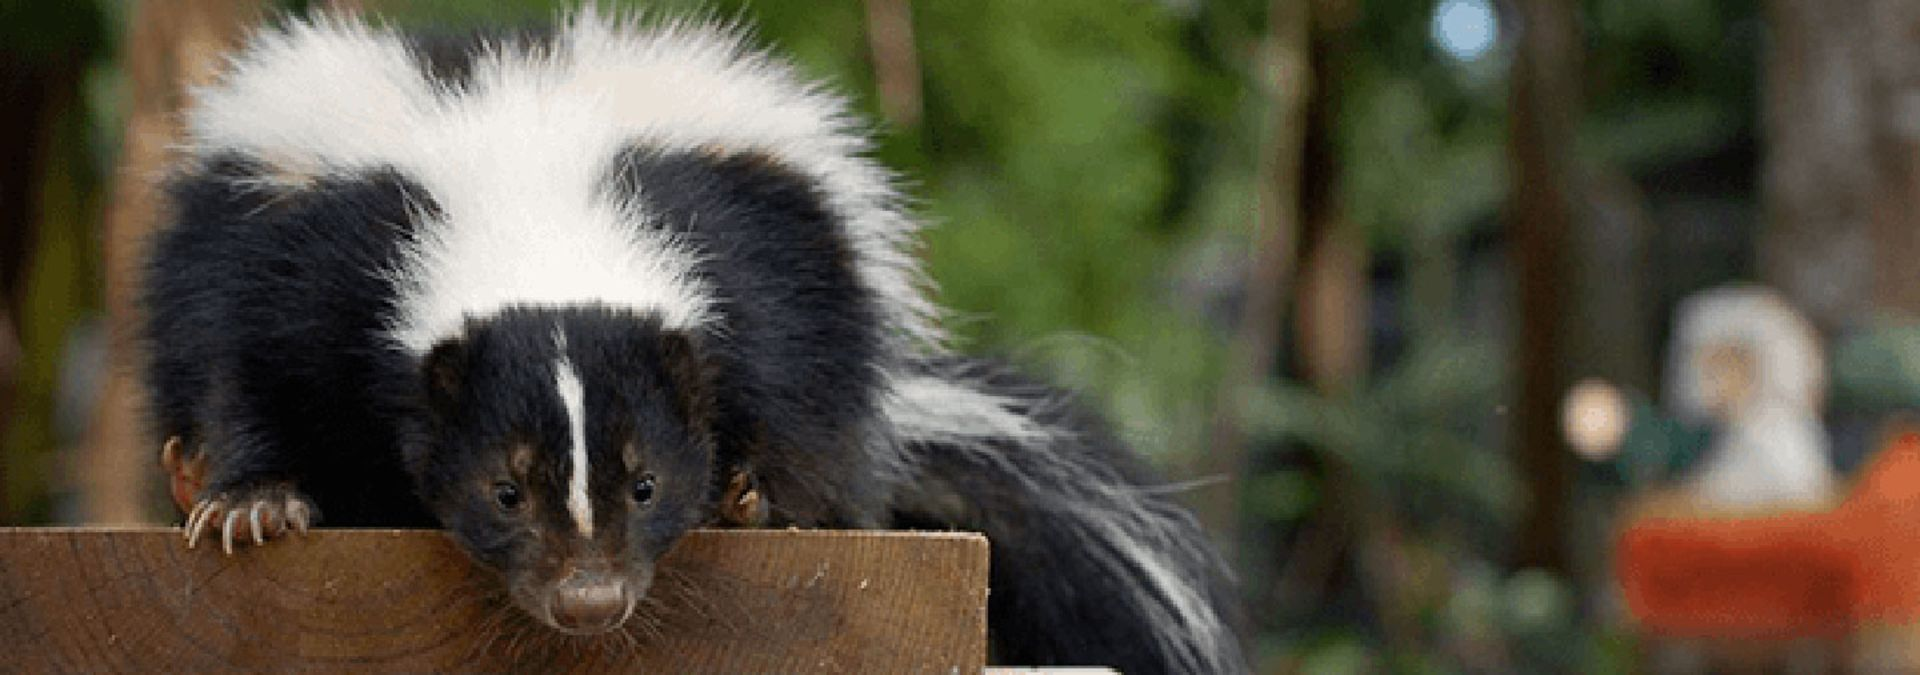 A skunk in the outdoors